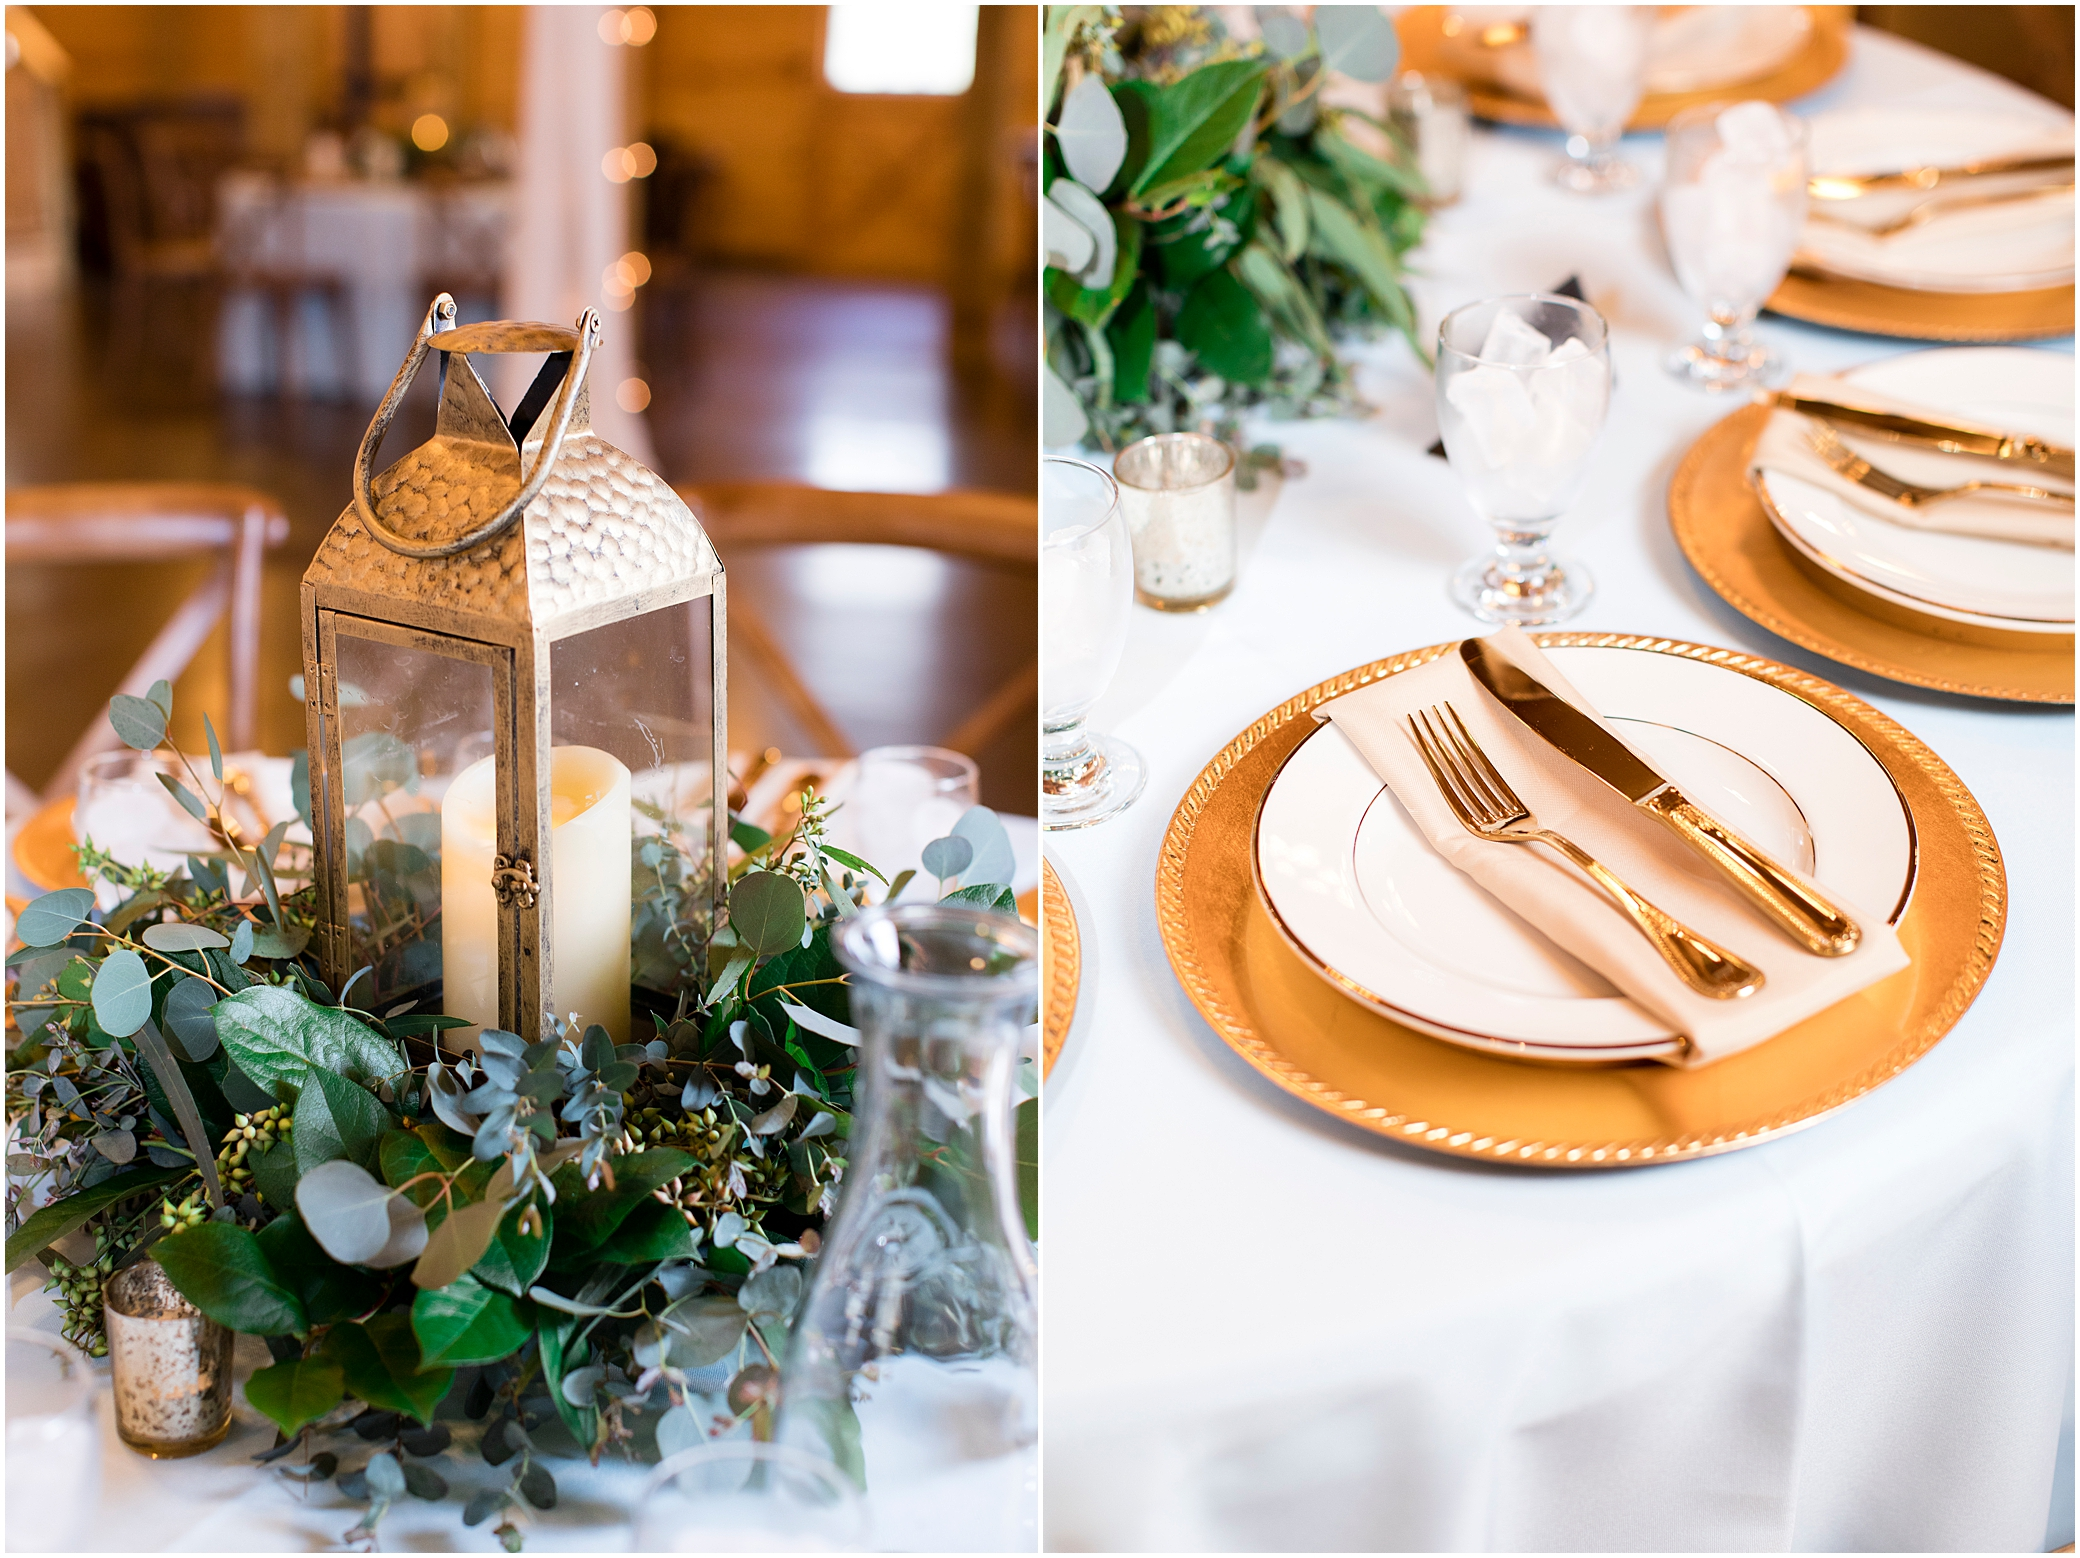 wedding reception decor at sierra vista wedding, a little party events, pumpernickel pickle catering